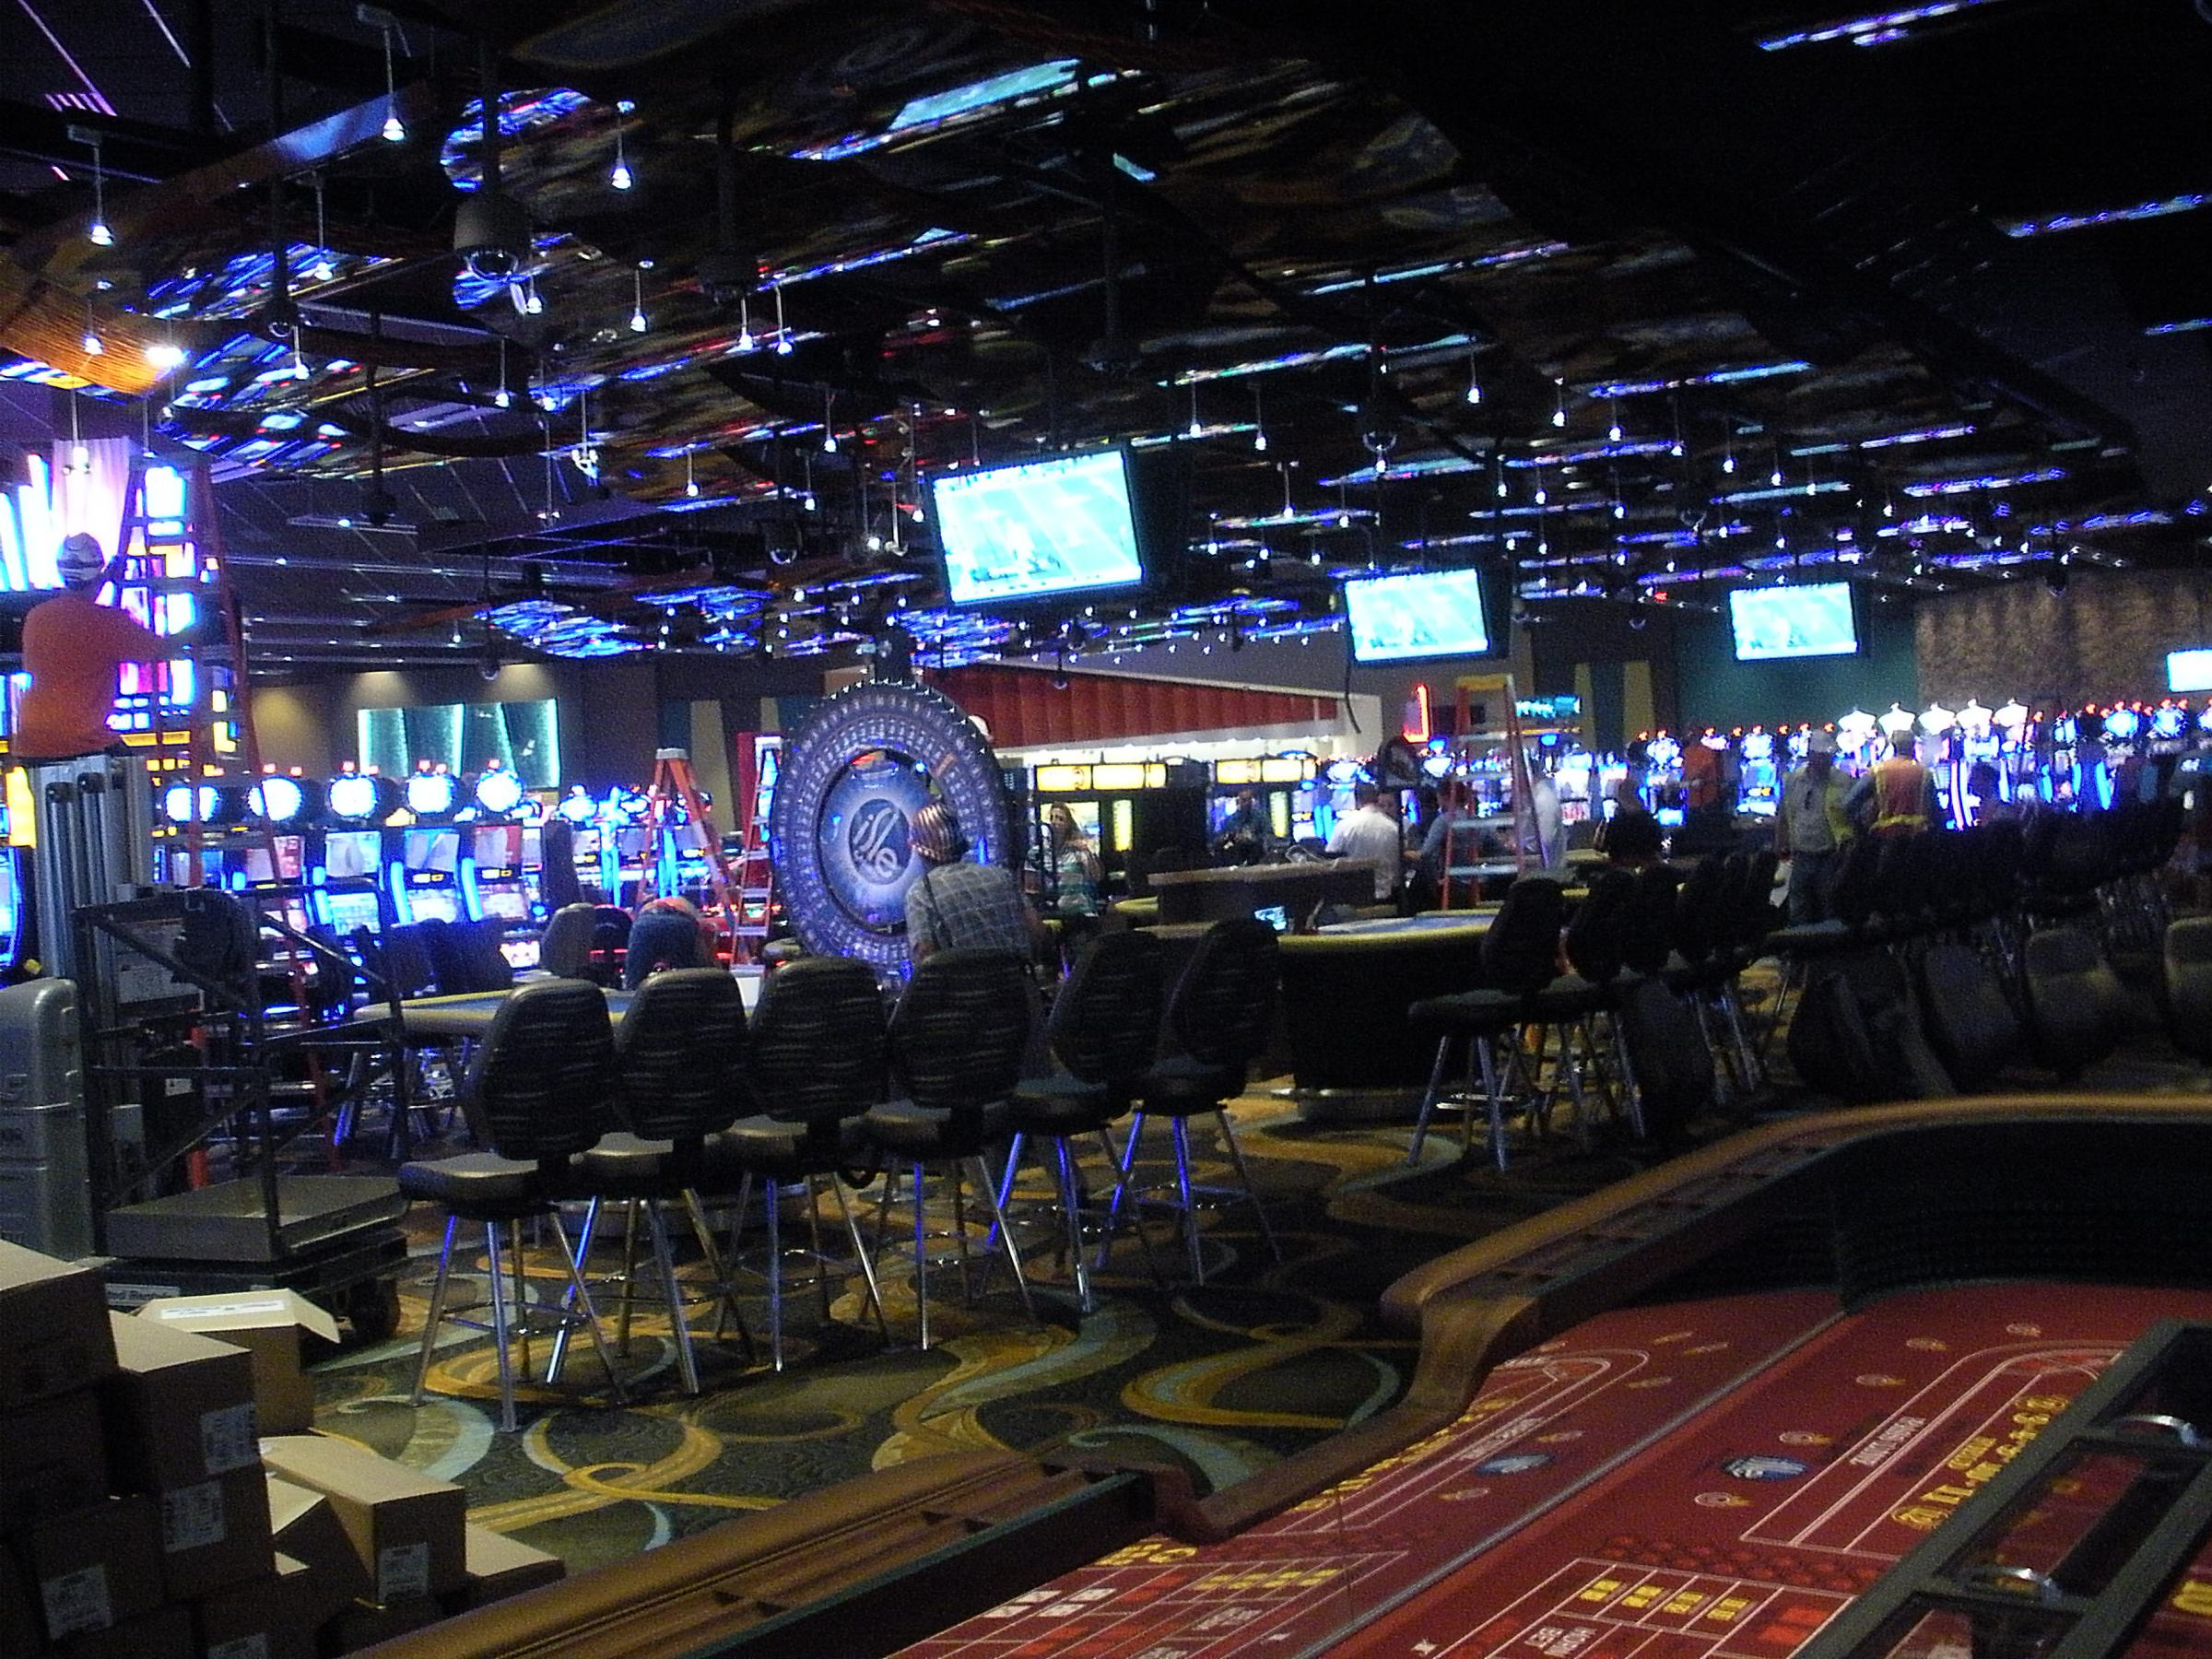 Area cape casino girardeau in location missouri betonline casino